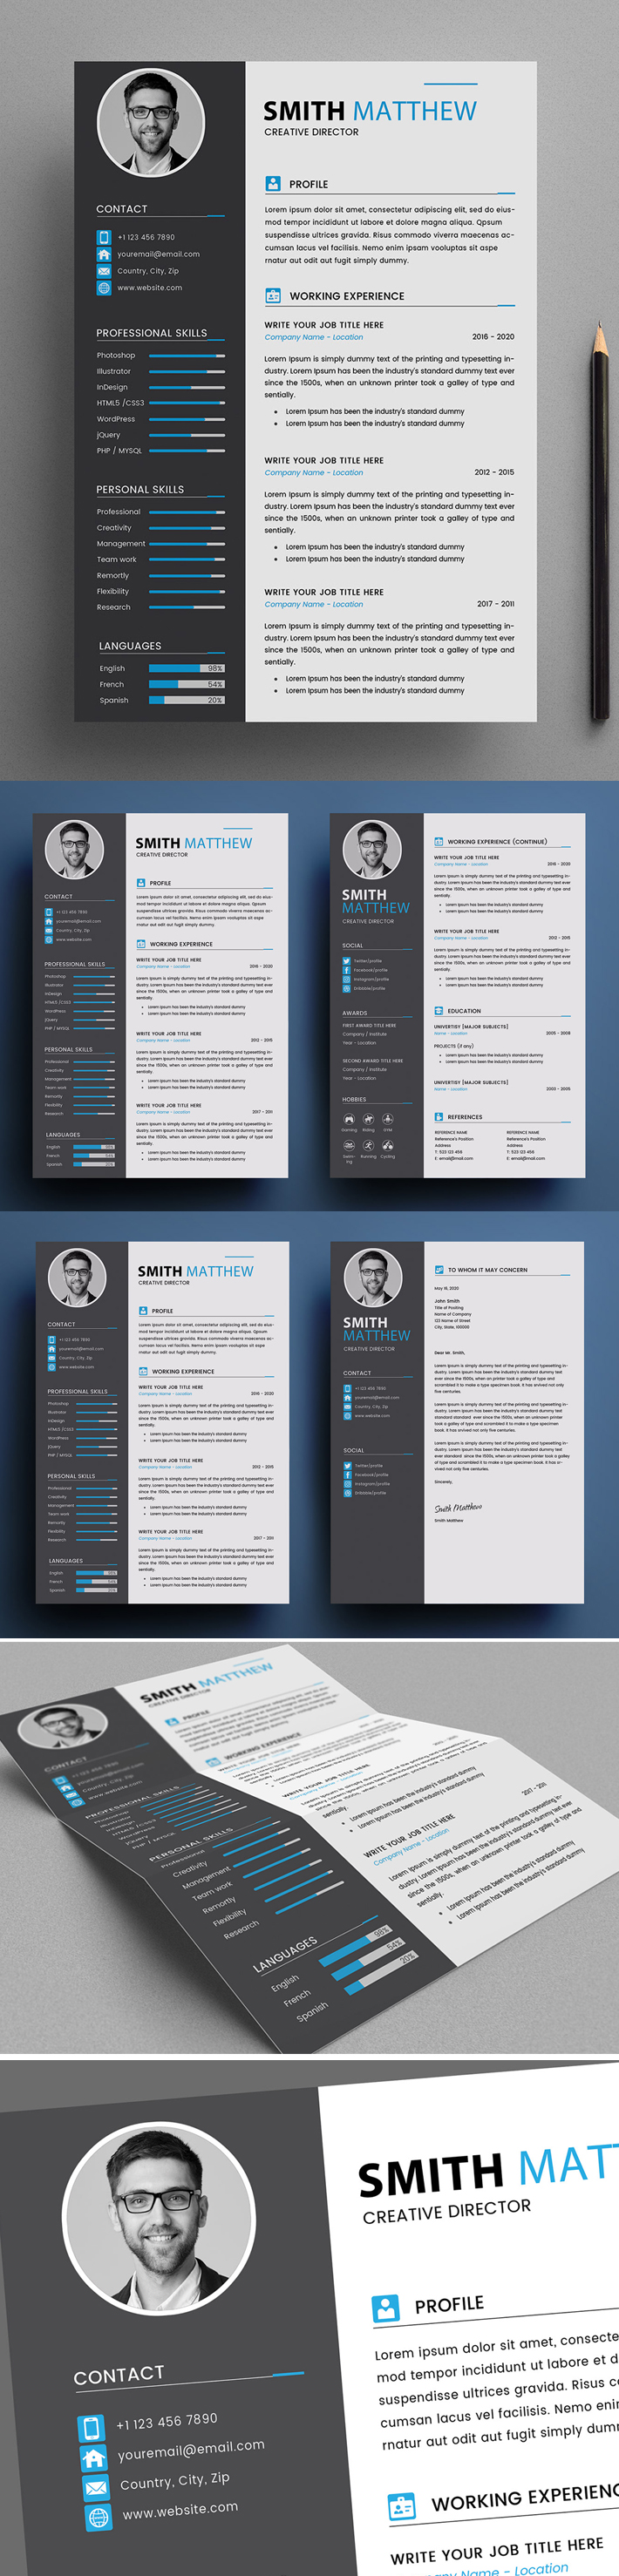 Free Creative 2 Page Resume / CV Template